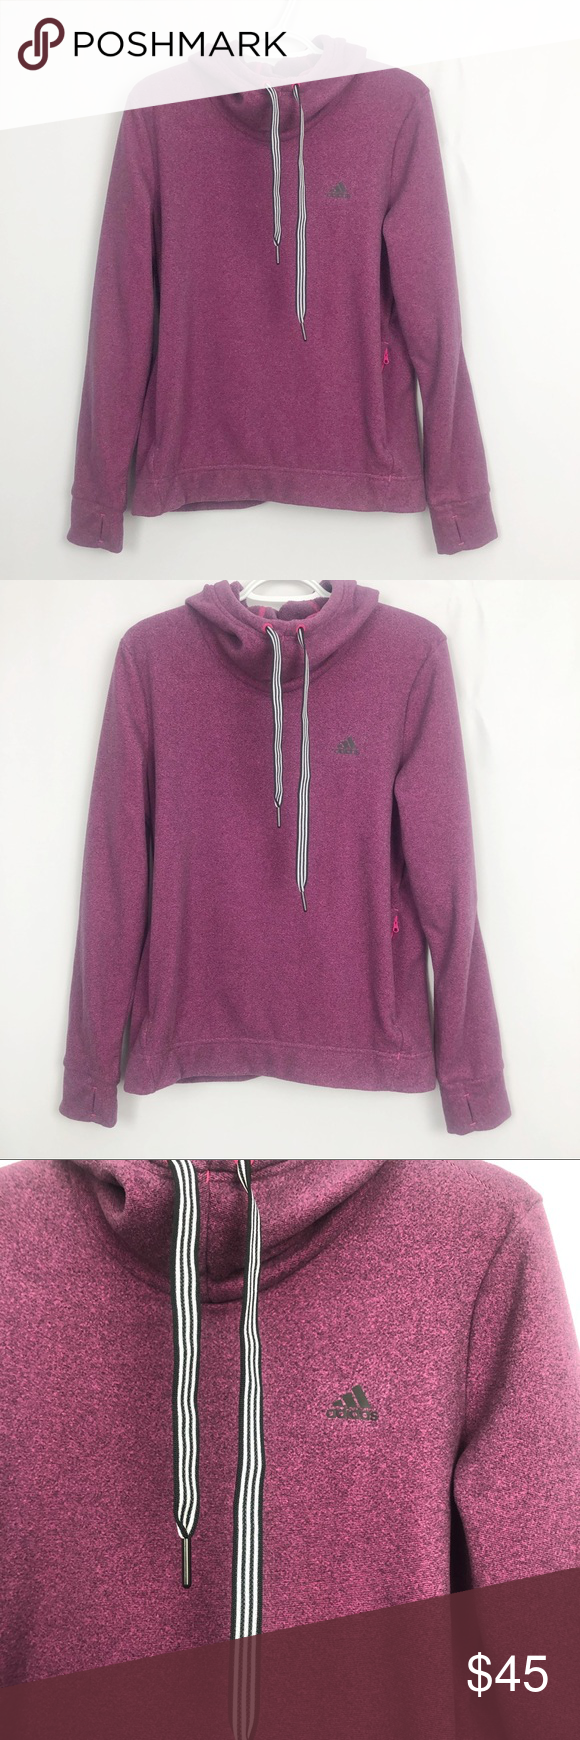 Adidas Fleece Cowl Neck Sweatshirt In Excellent Used Condition Bought This Brand New And Only Worn Twice Super Cowl Neck Sweatshirt Clothes Design Cowl Neck [ 1740 x 580 Pixel ]